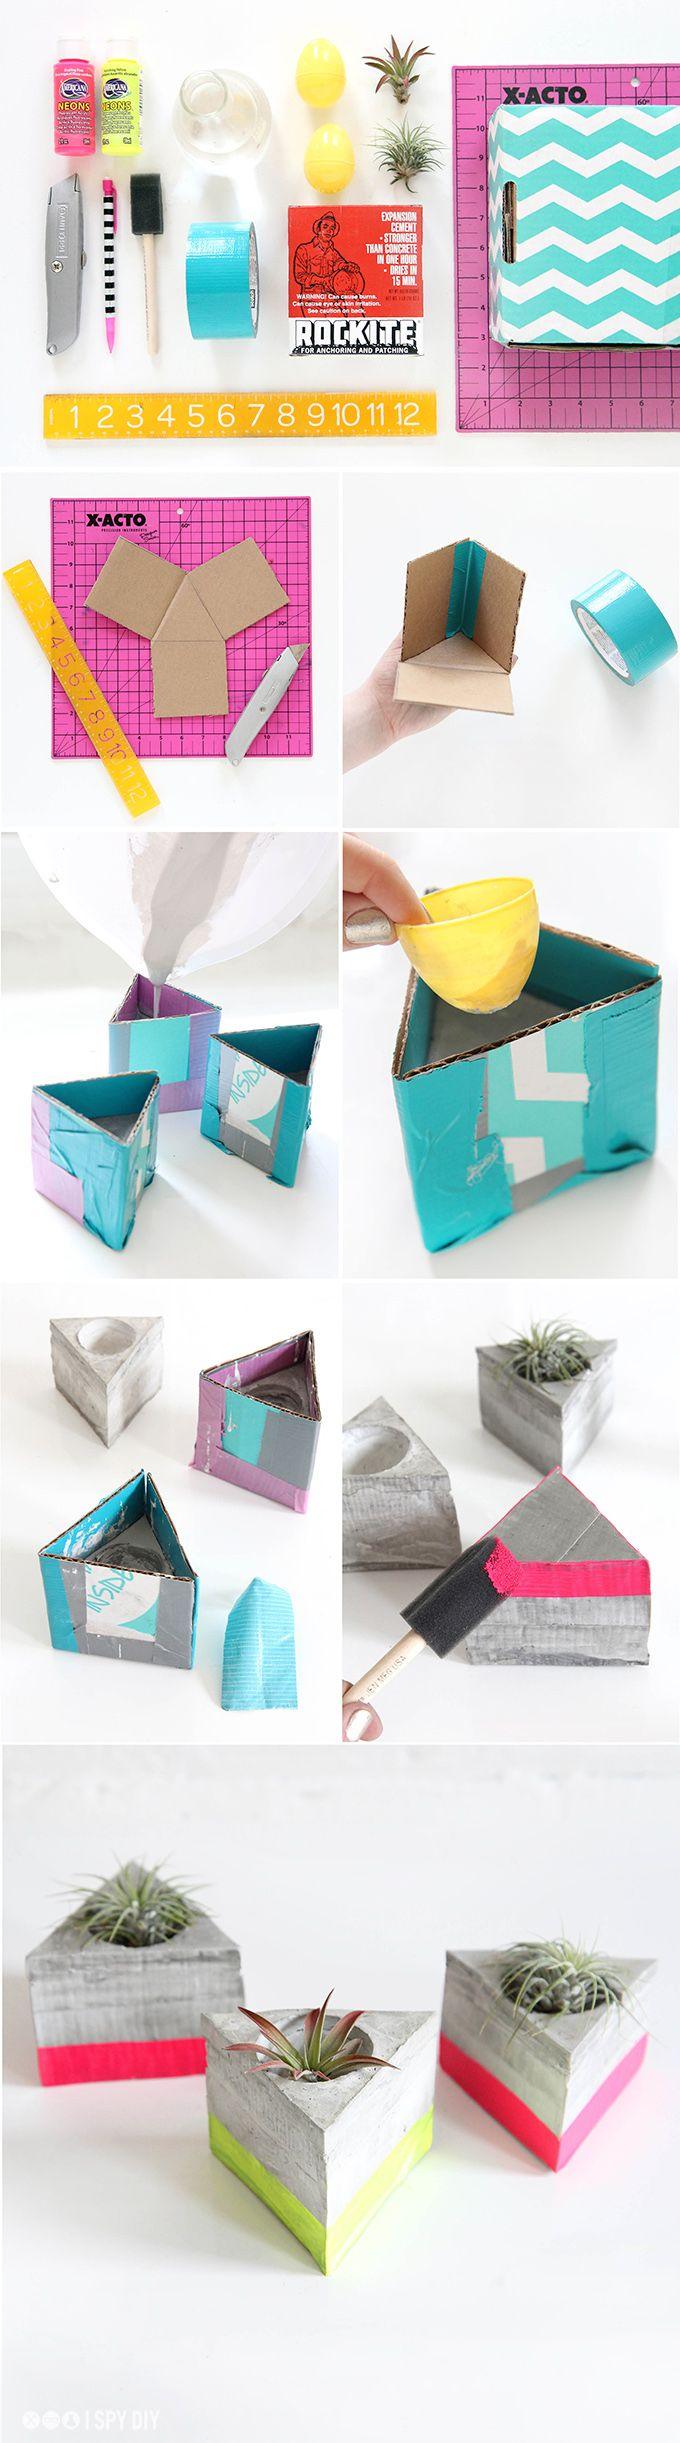 MY DIY | Triangle Cement Airplant Holder | I SPY DIY: